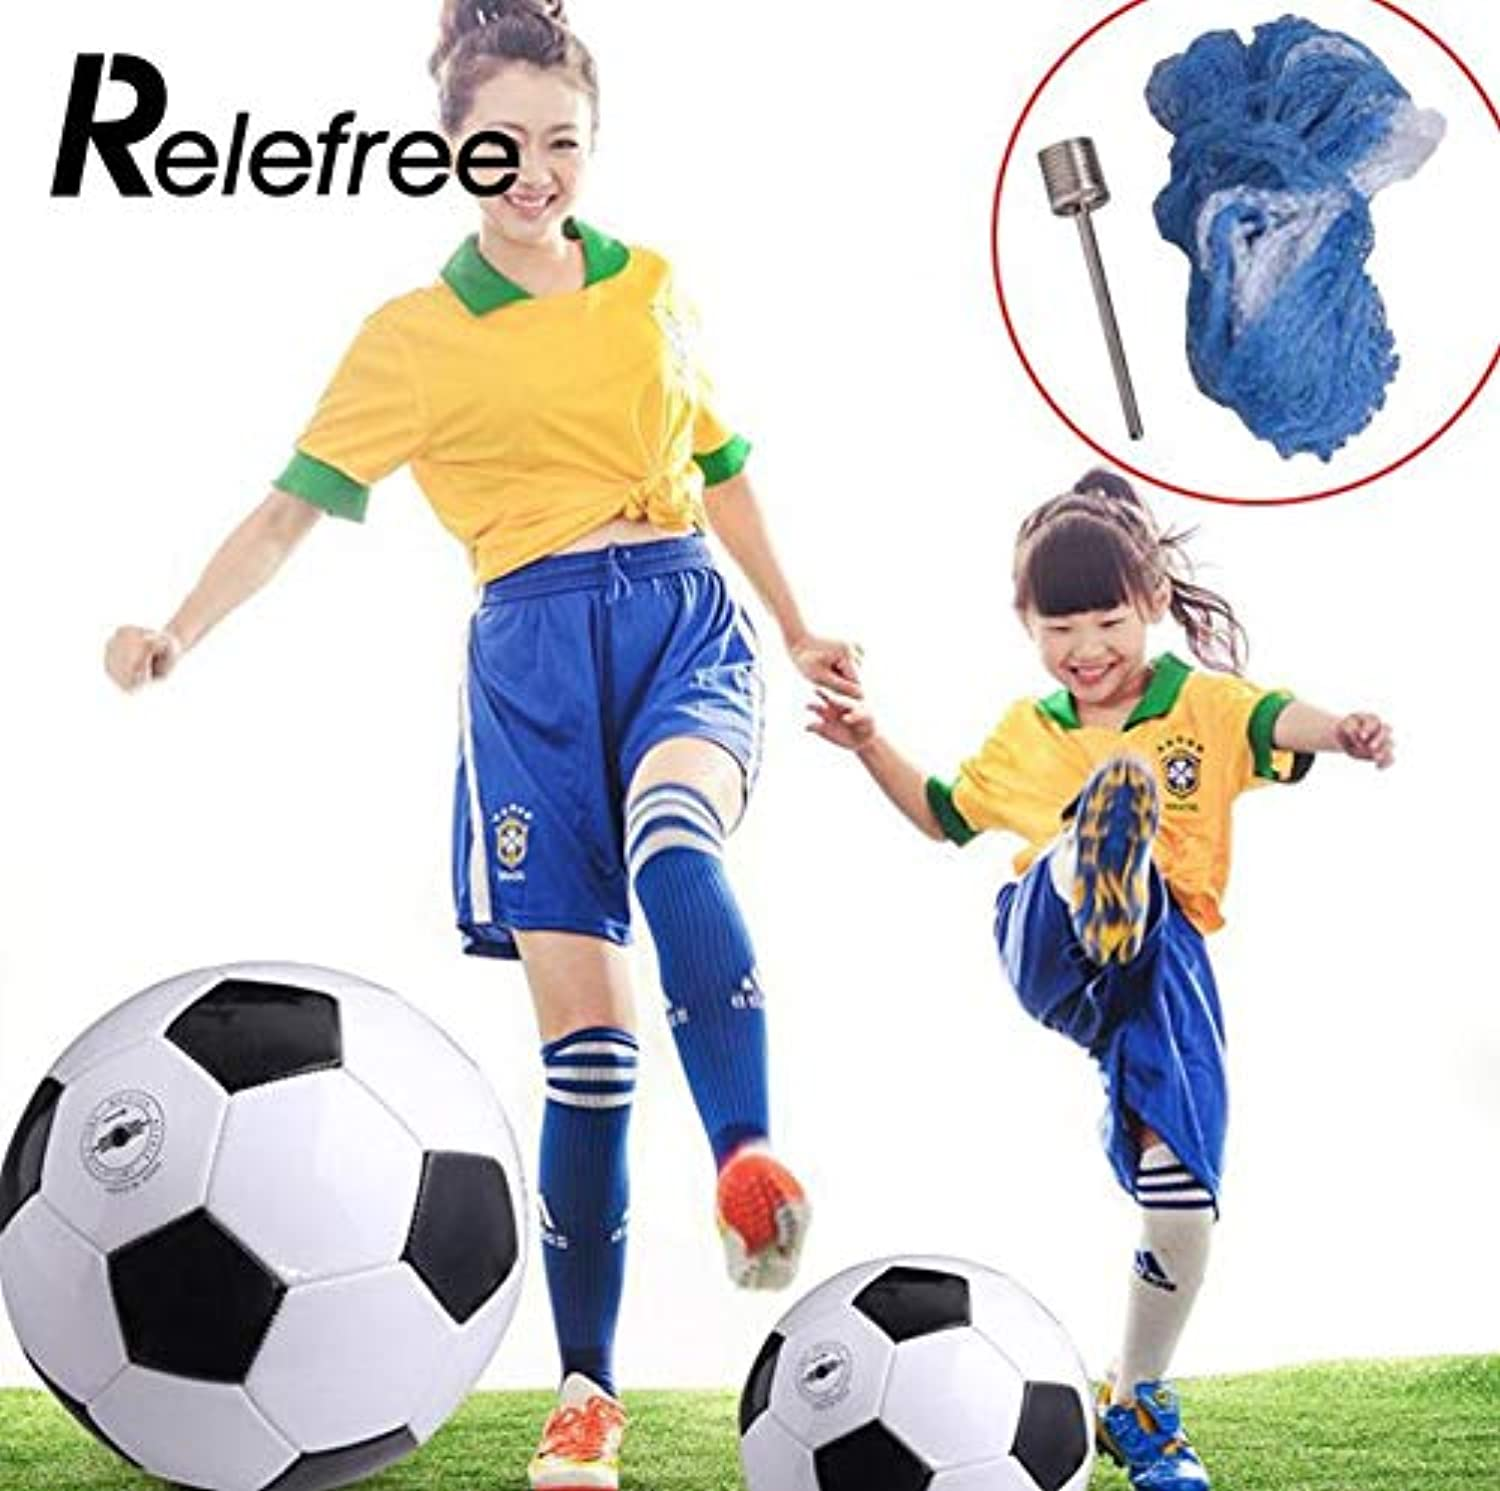 Relefree 2017 1 Pcs Teenagers Training Balls Football Ball Gift School Sports Football